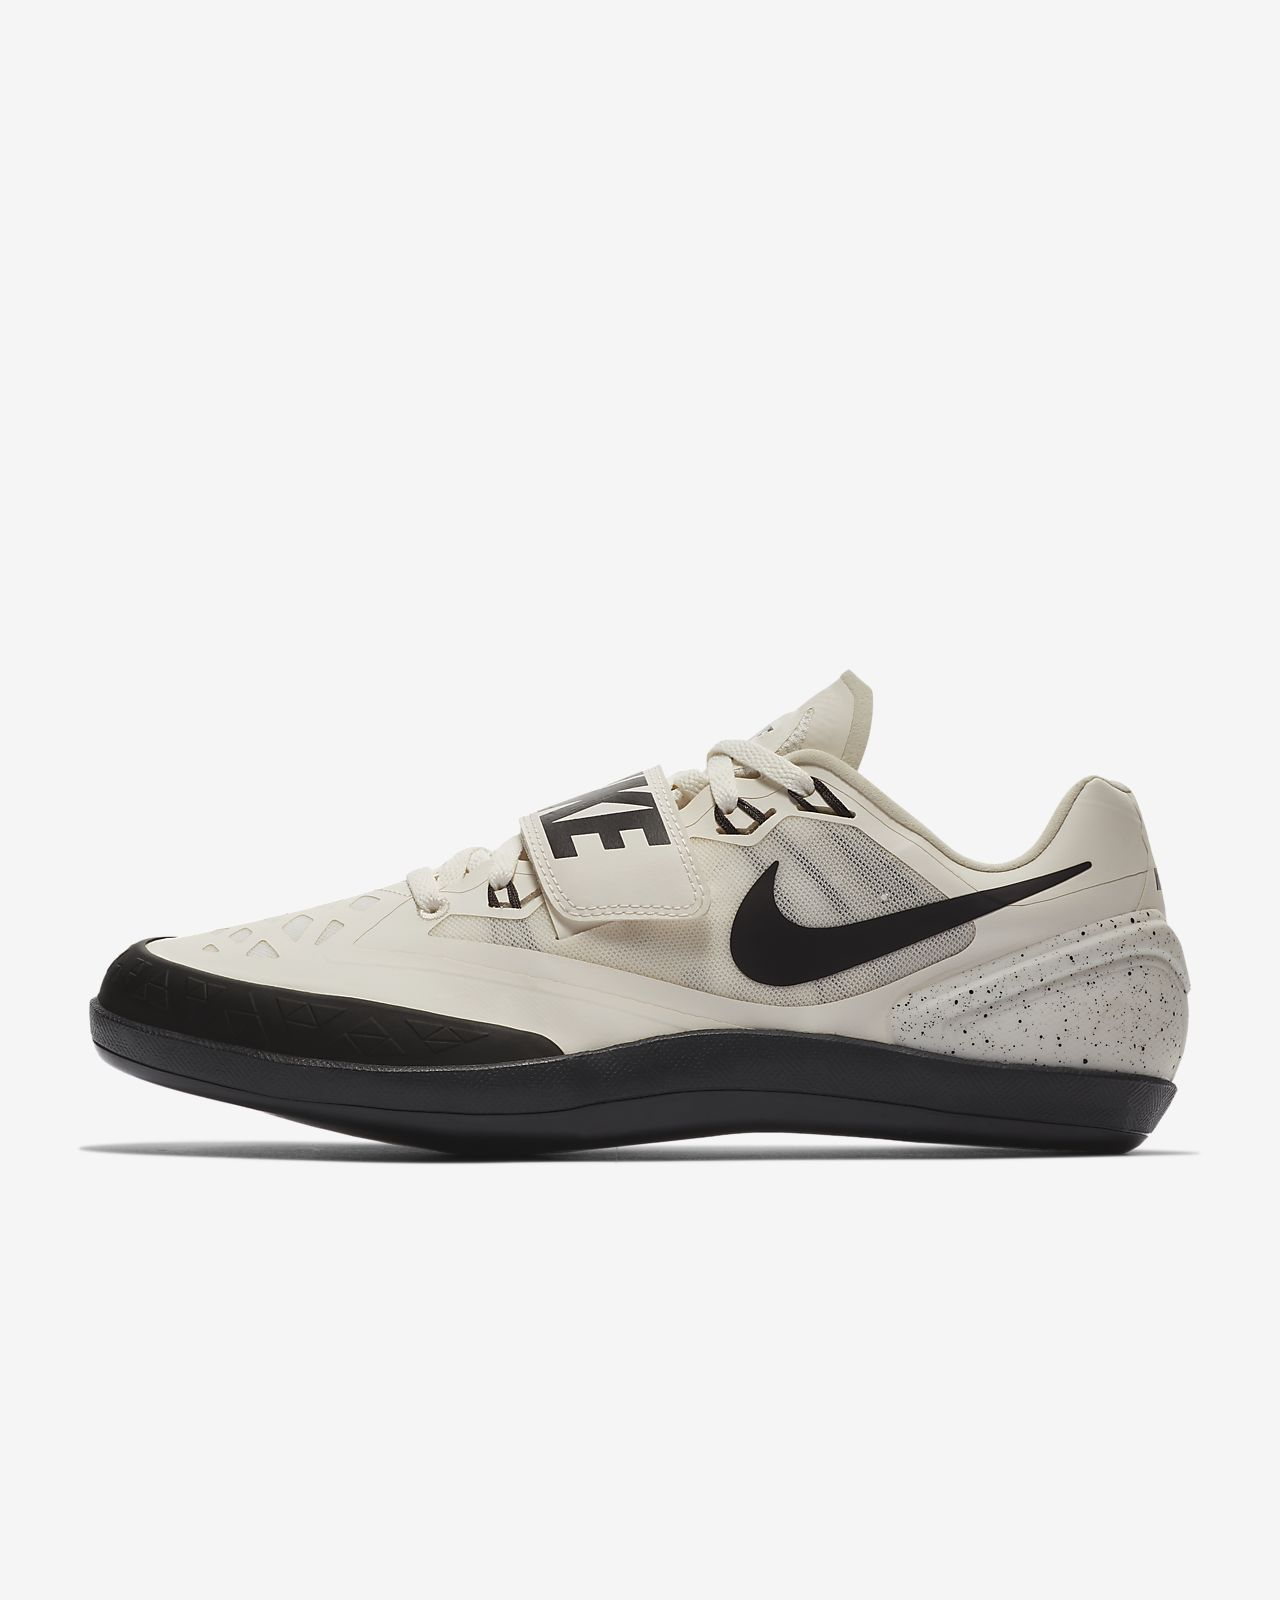 the latest 9a18f bef7c ... Nike Zoom Rotational 6 Unisex Throwing Shoe